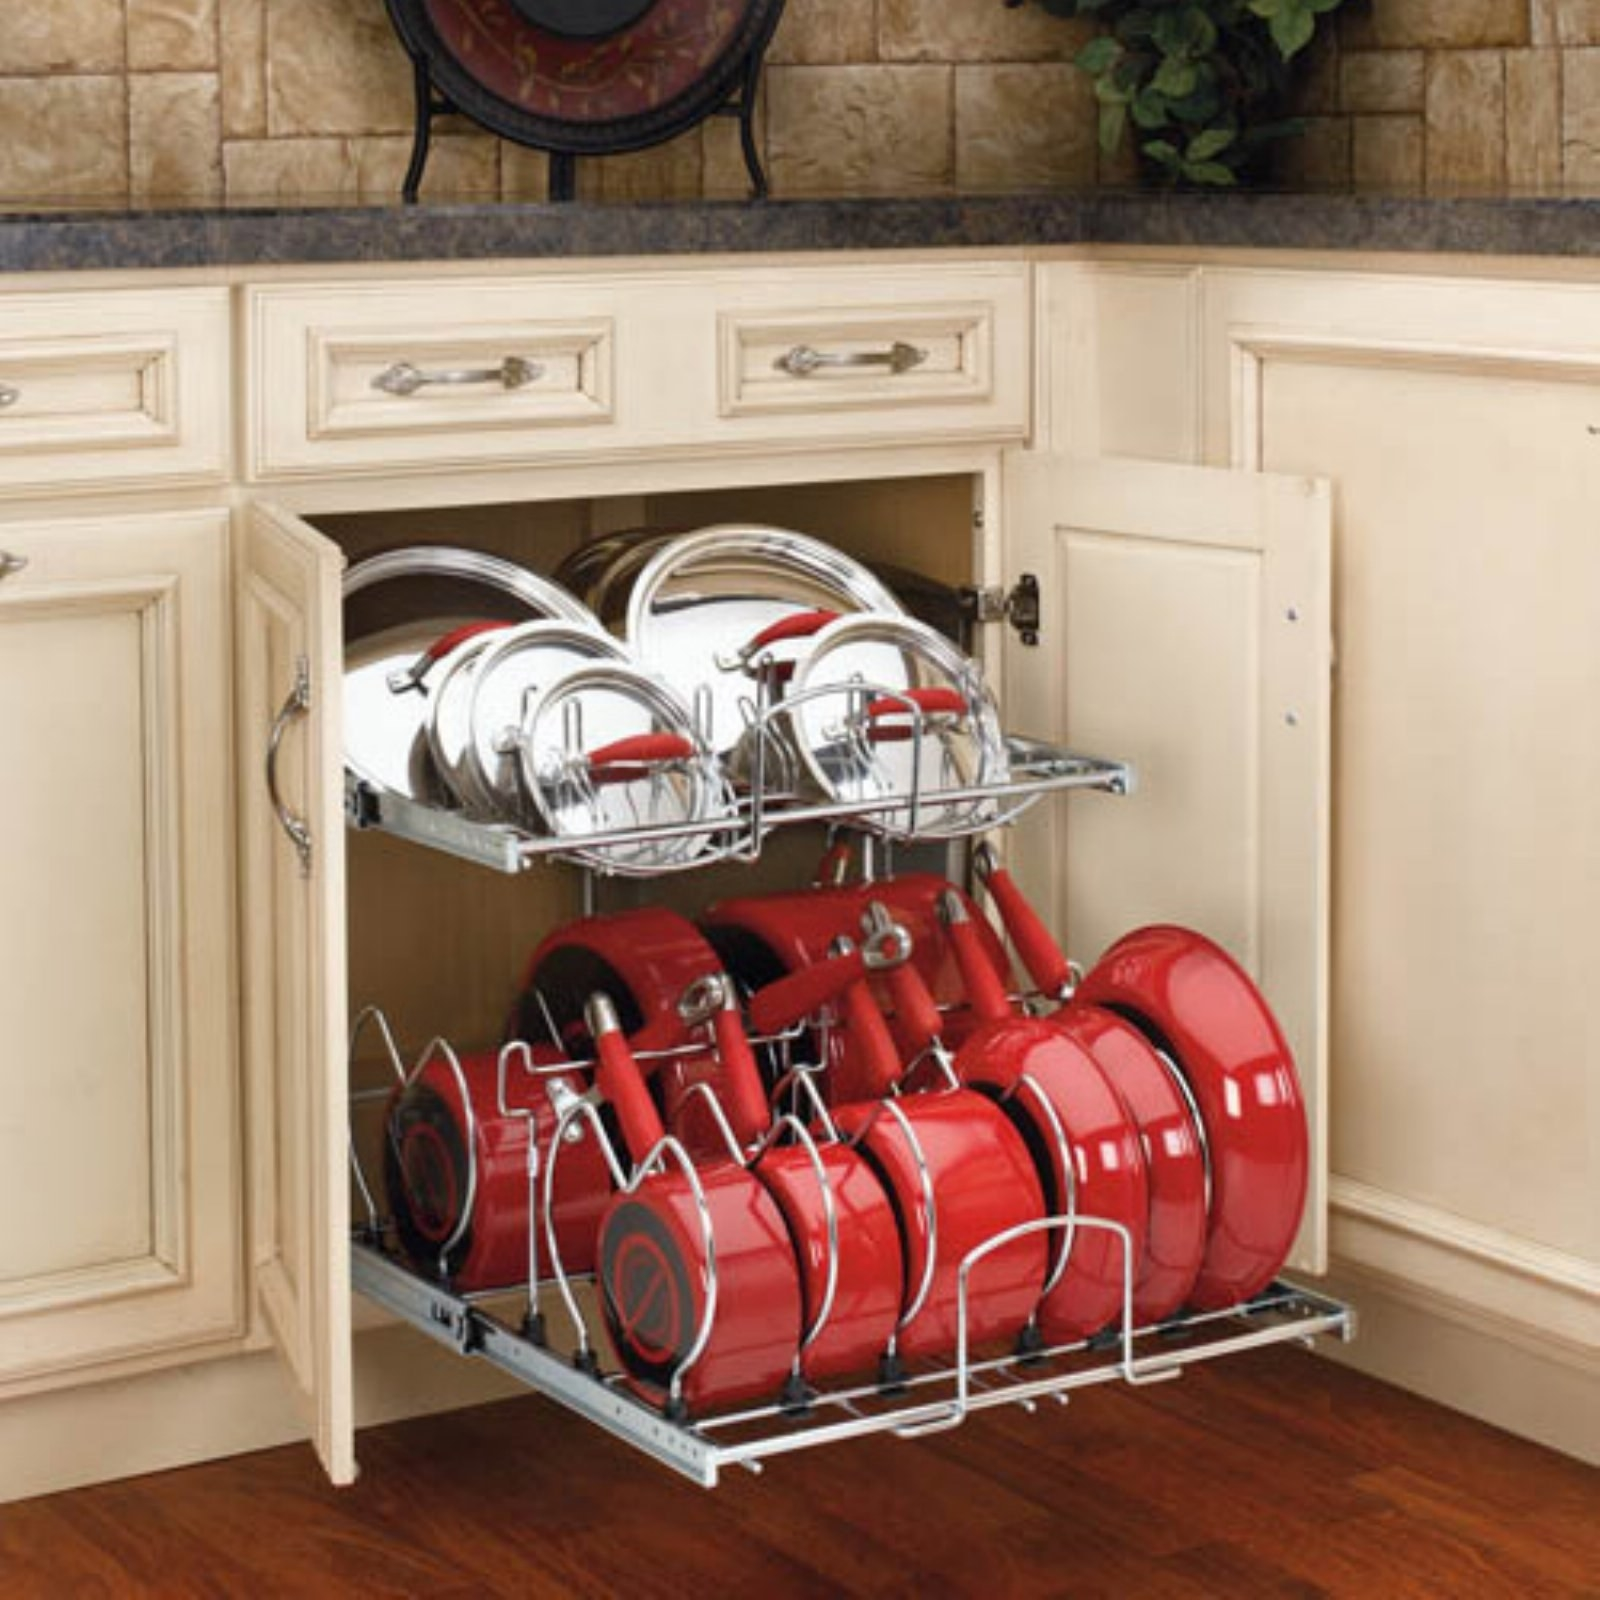 Red pots, pans, and metal tops organized in the kitchen cabinet